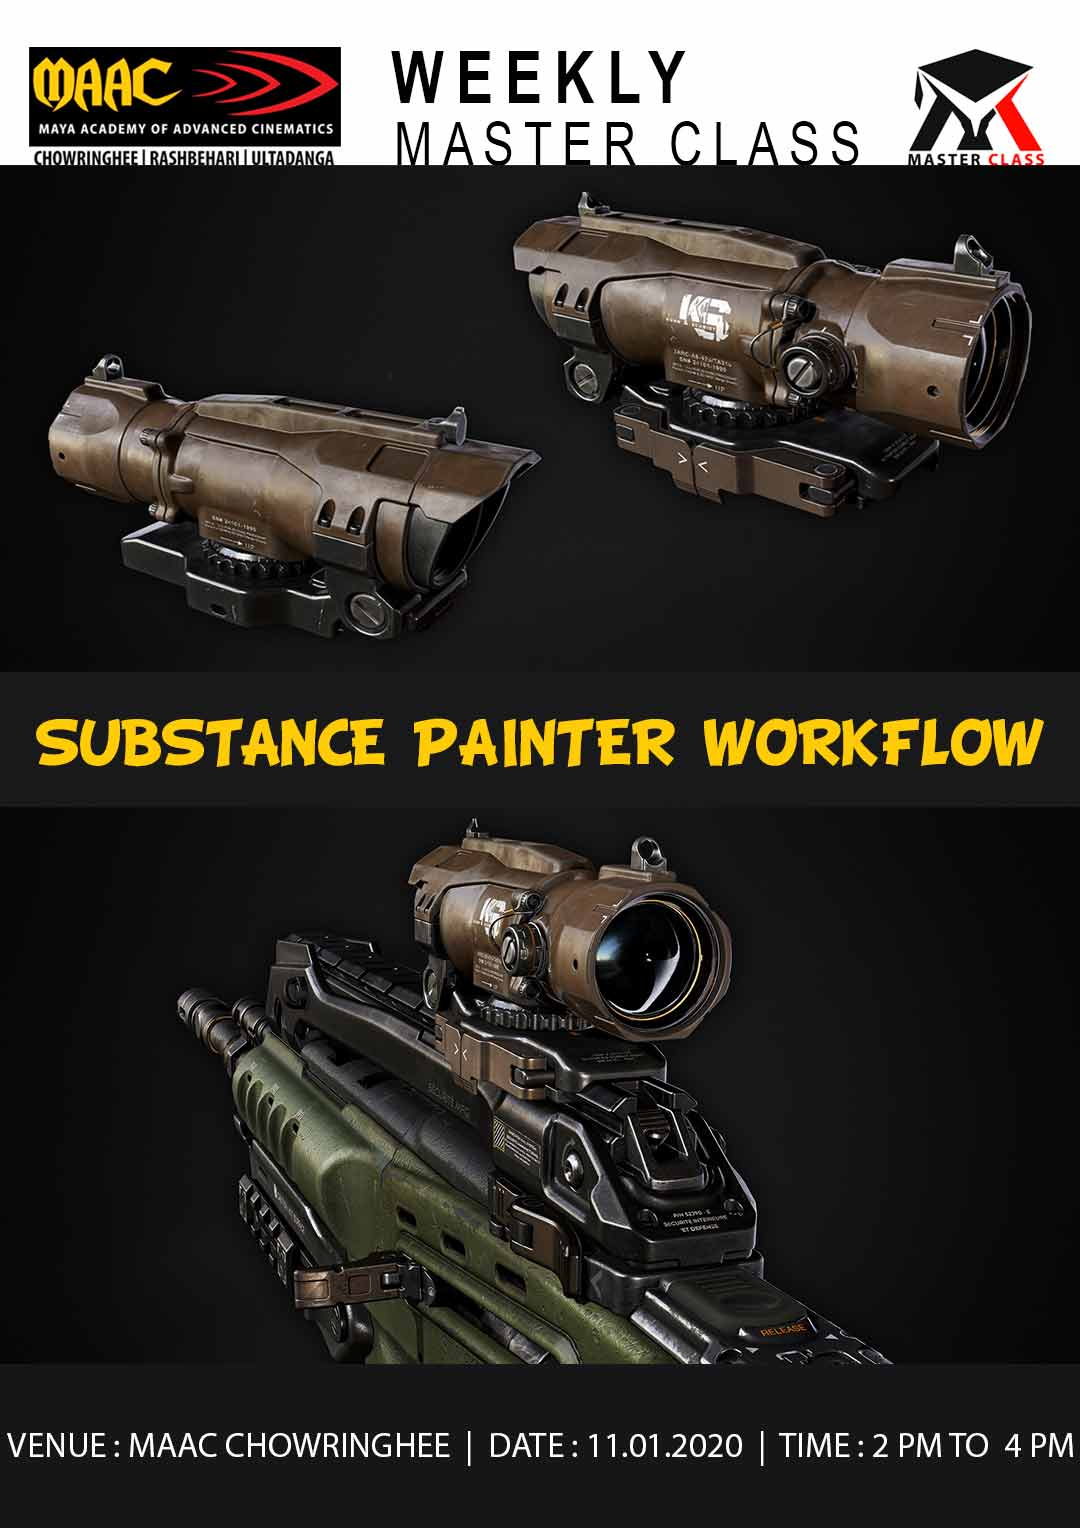 Weekly Master Class on Substance Painter Workflow